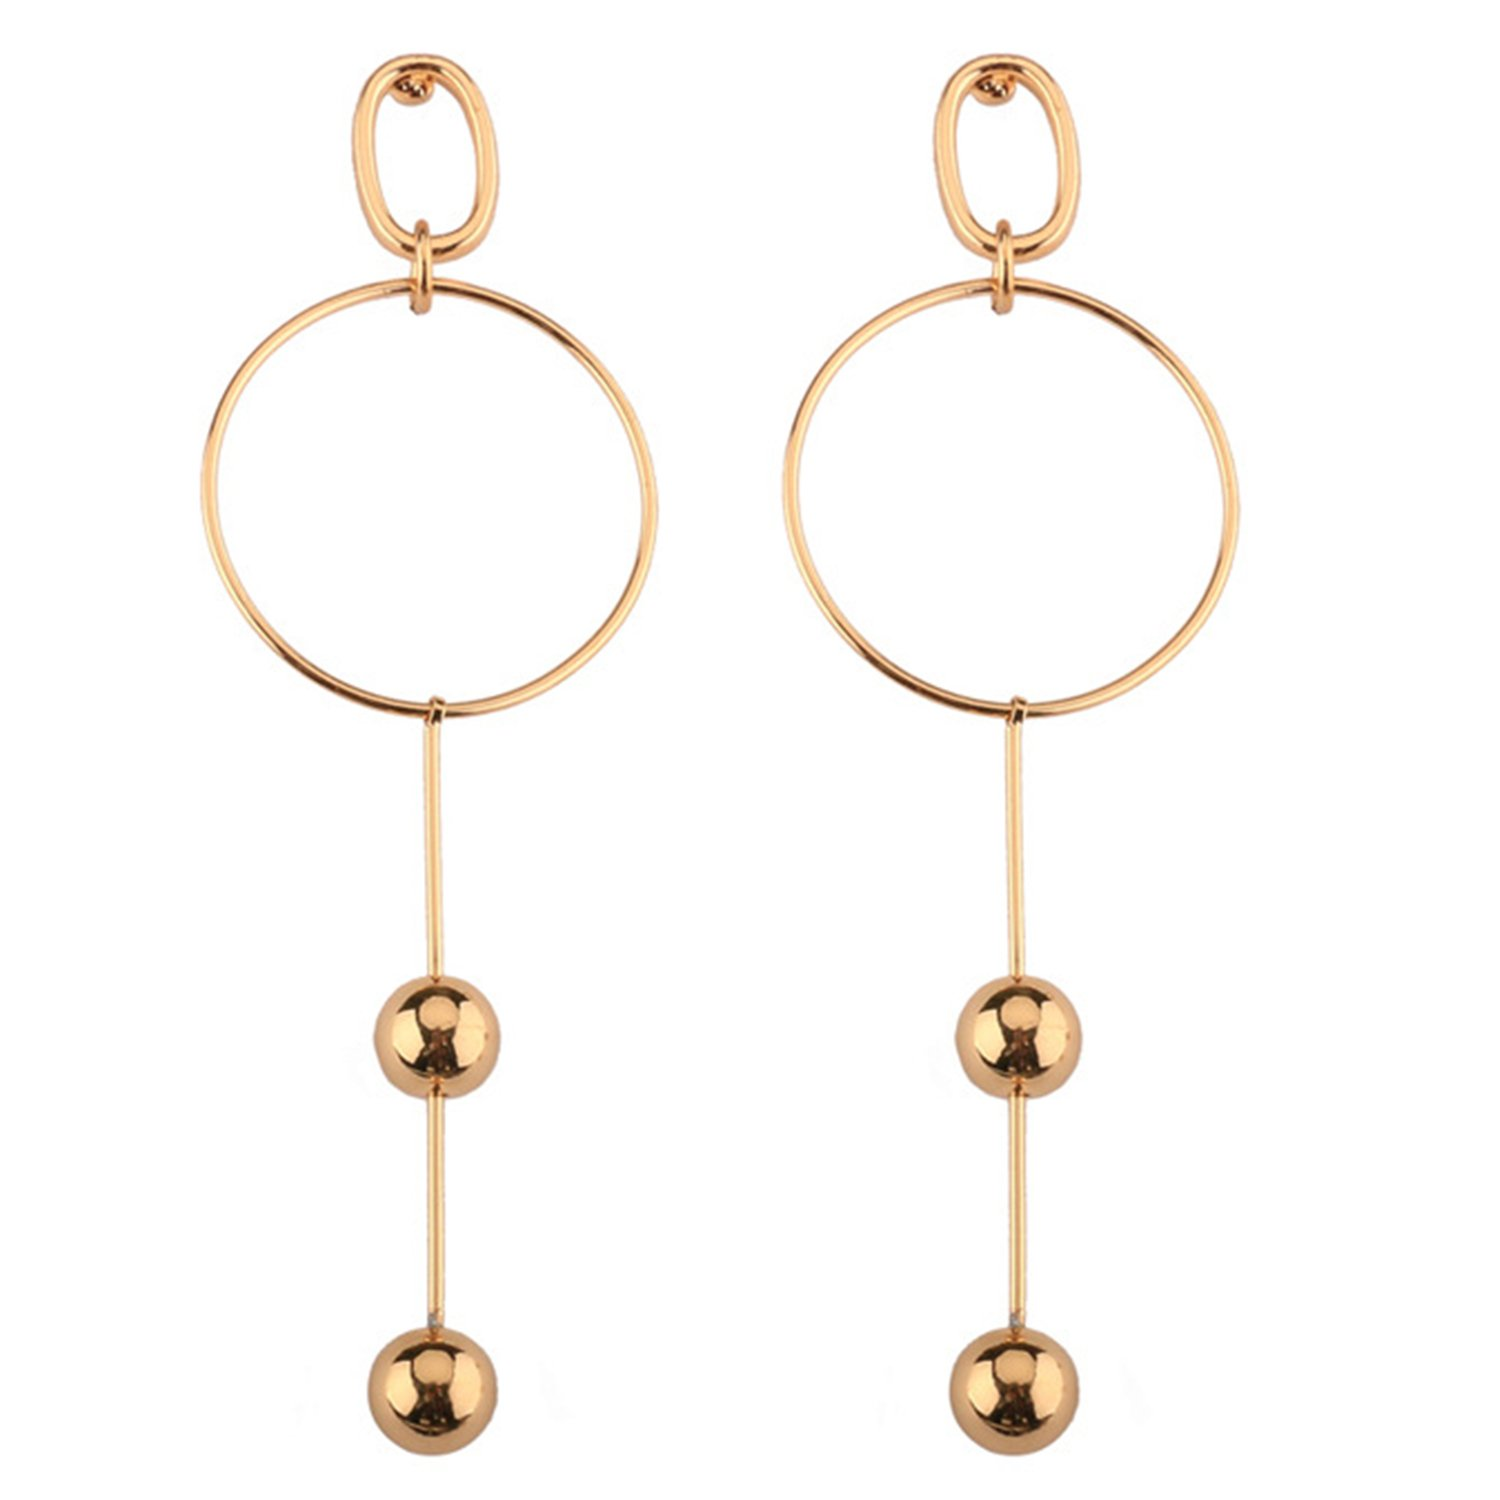 Gold Plated Studded Drop Dangle Earrings Women's Gift Idea Fashion Infinity Sterling Silver Lightweight Sleek Chain Tassel